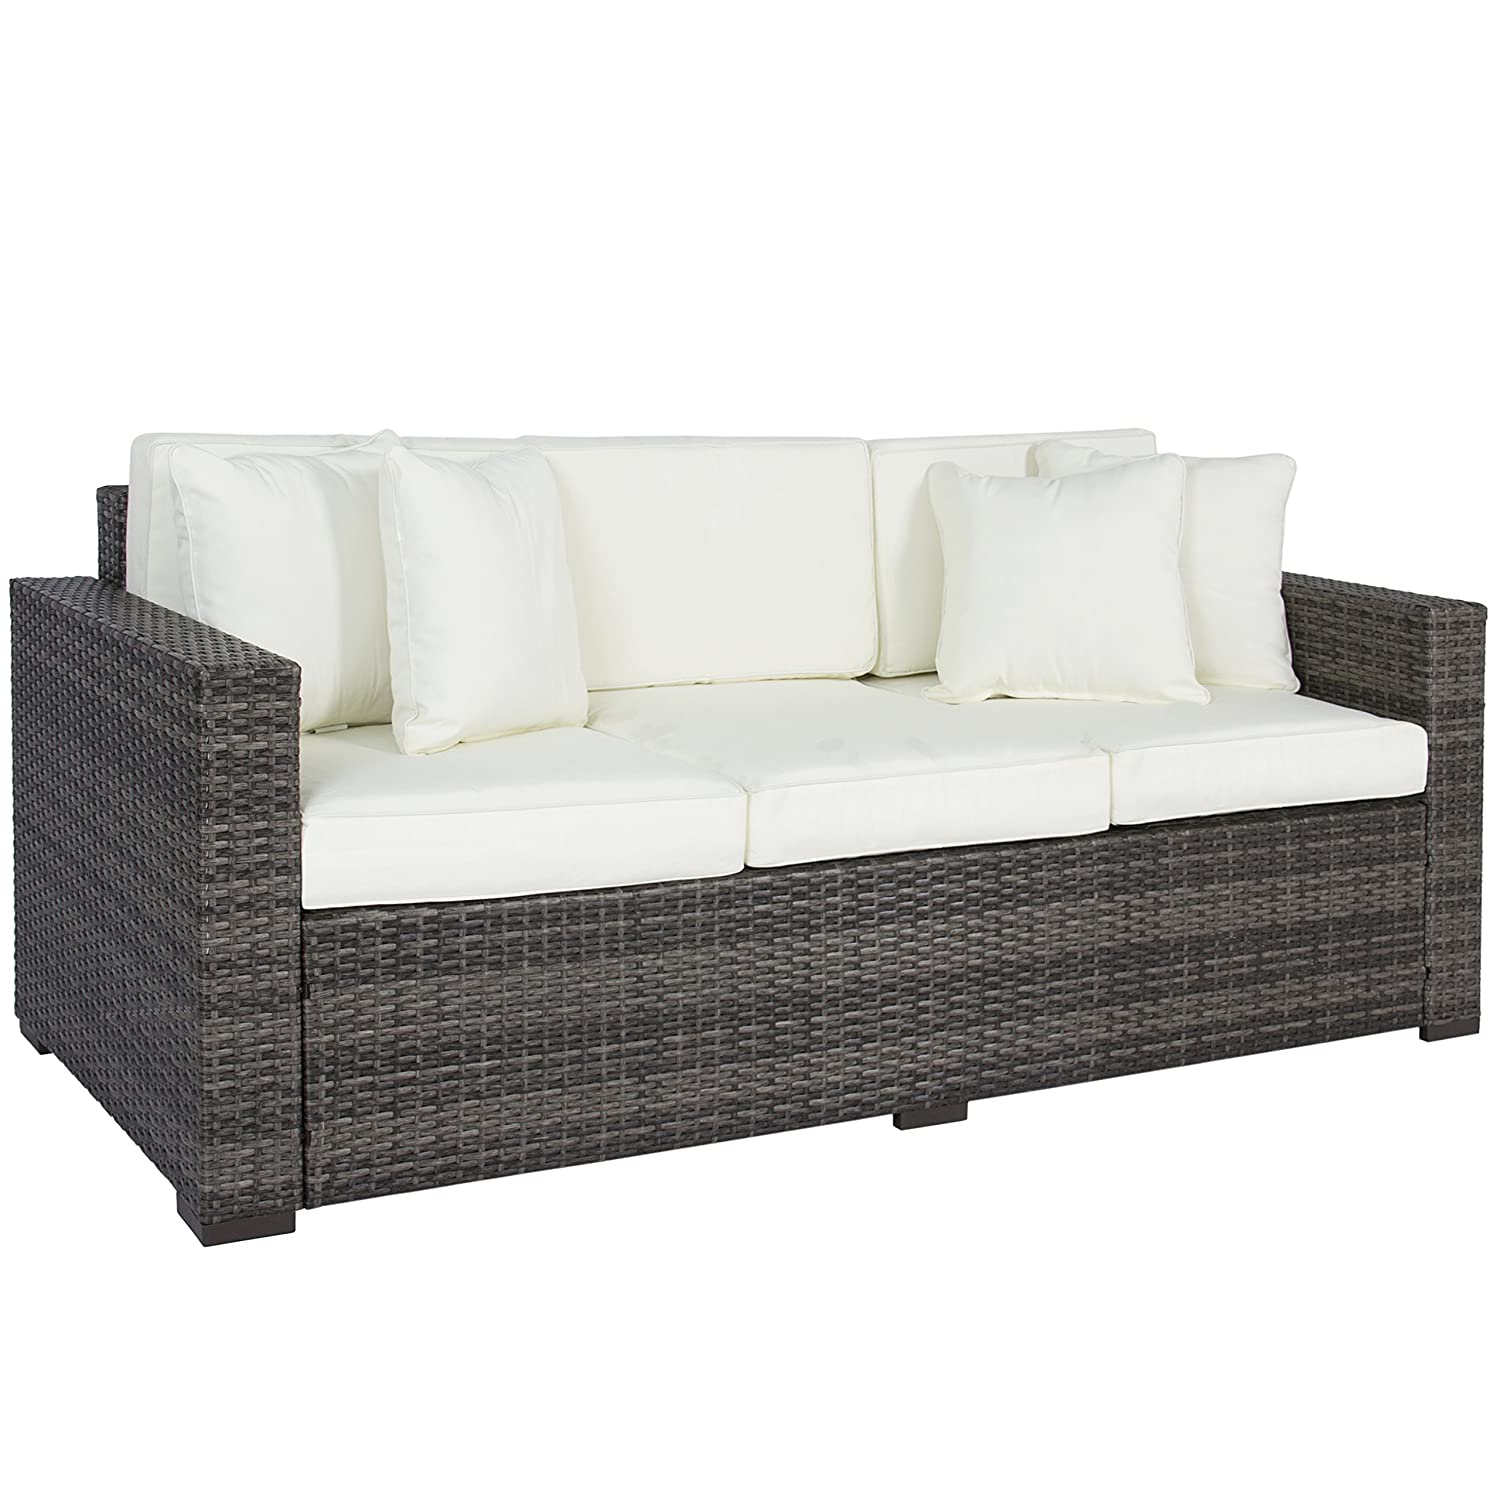 for lounge chairs outside slings cushions rattan patio pads sectional ideas pad sofas furniture full large set home couch at chair nz sale oversized melbourne sunbrella replacement wicker snazzy sets outdoor seat bench hampton bay depot size porch inexpensive indoor ham sofa of